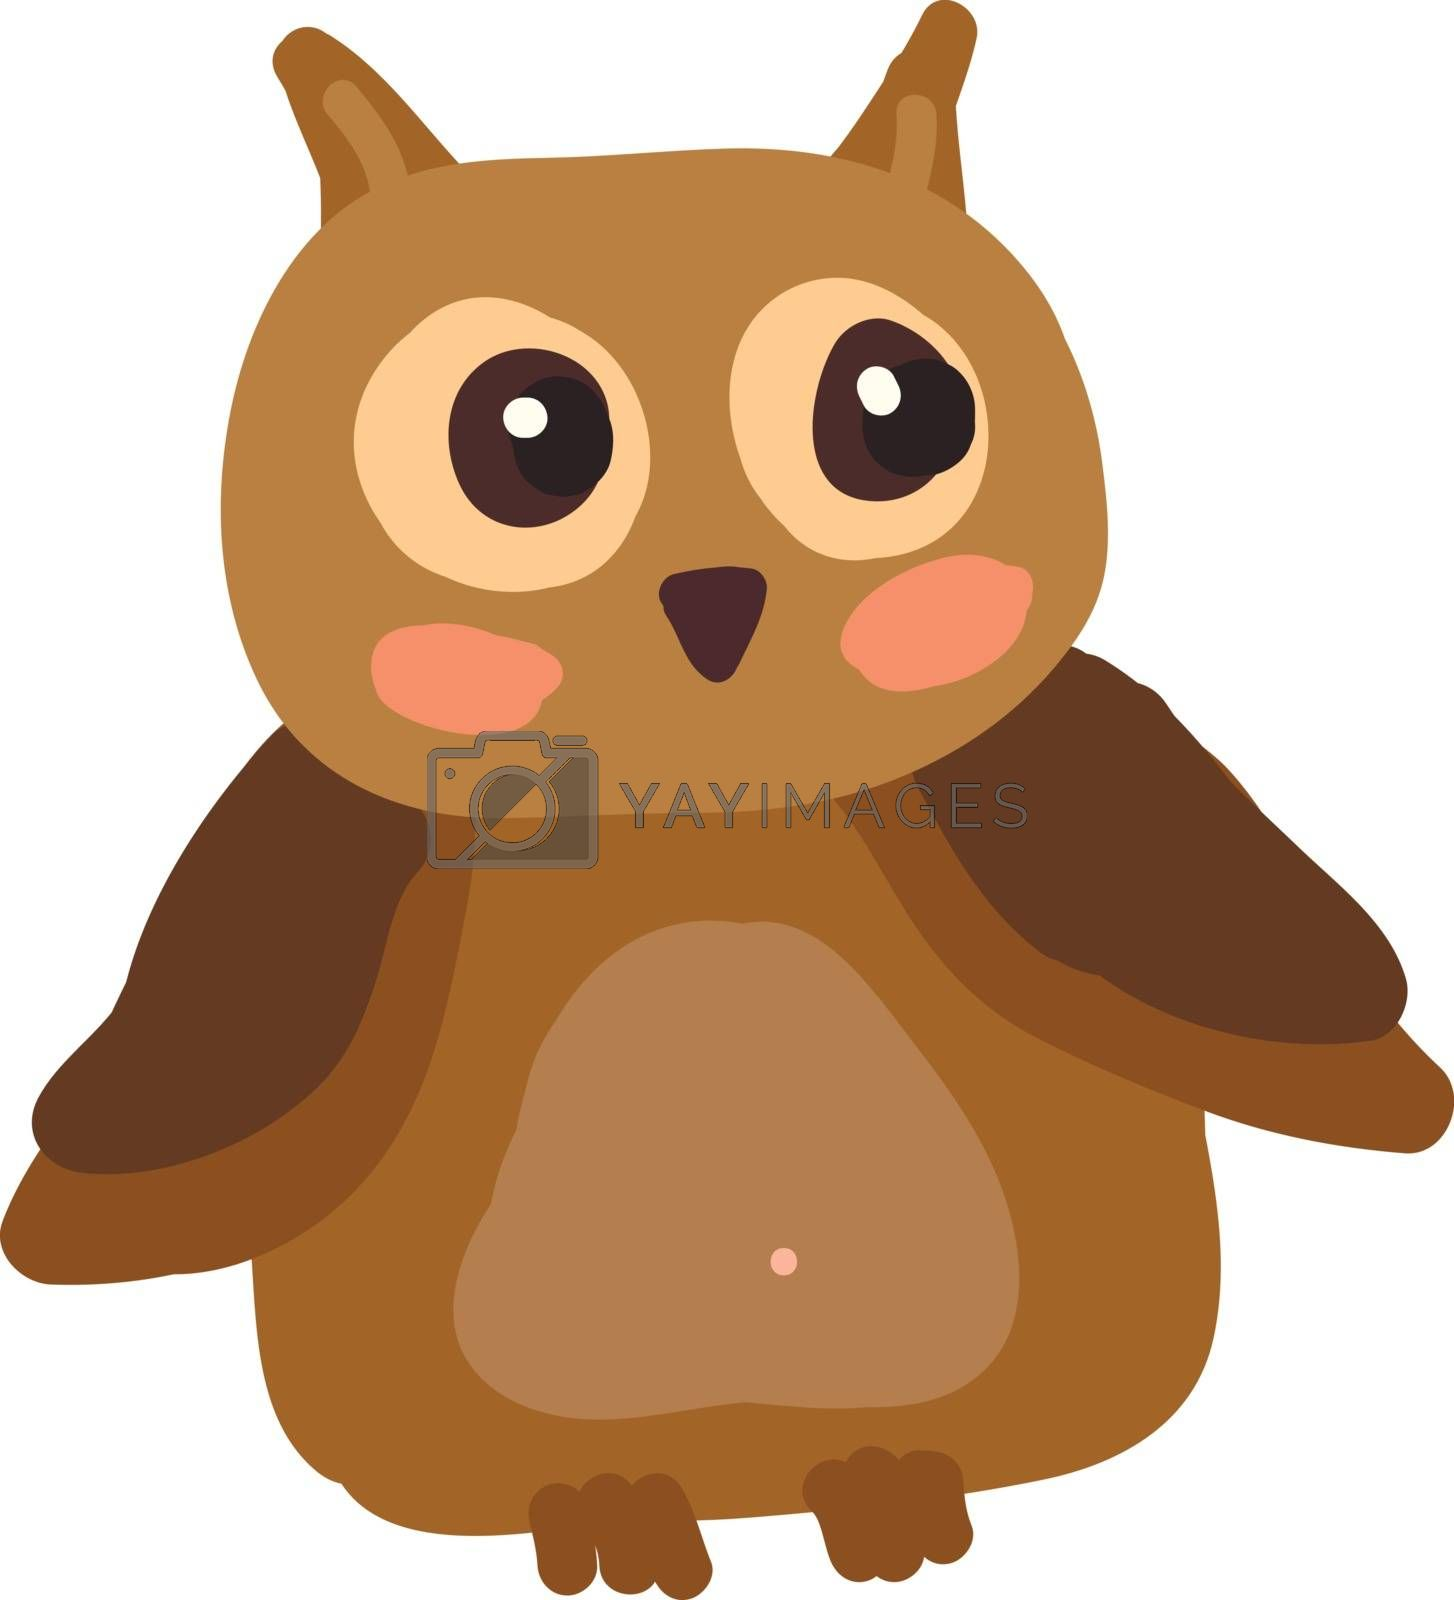 A drawing of an owl with big shinny eyes looking towards its left vector color drawing or illustration